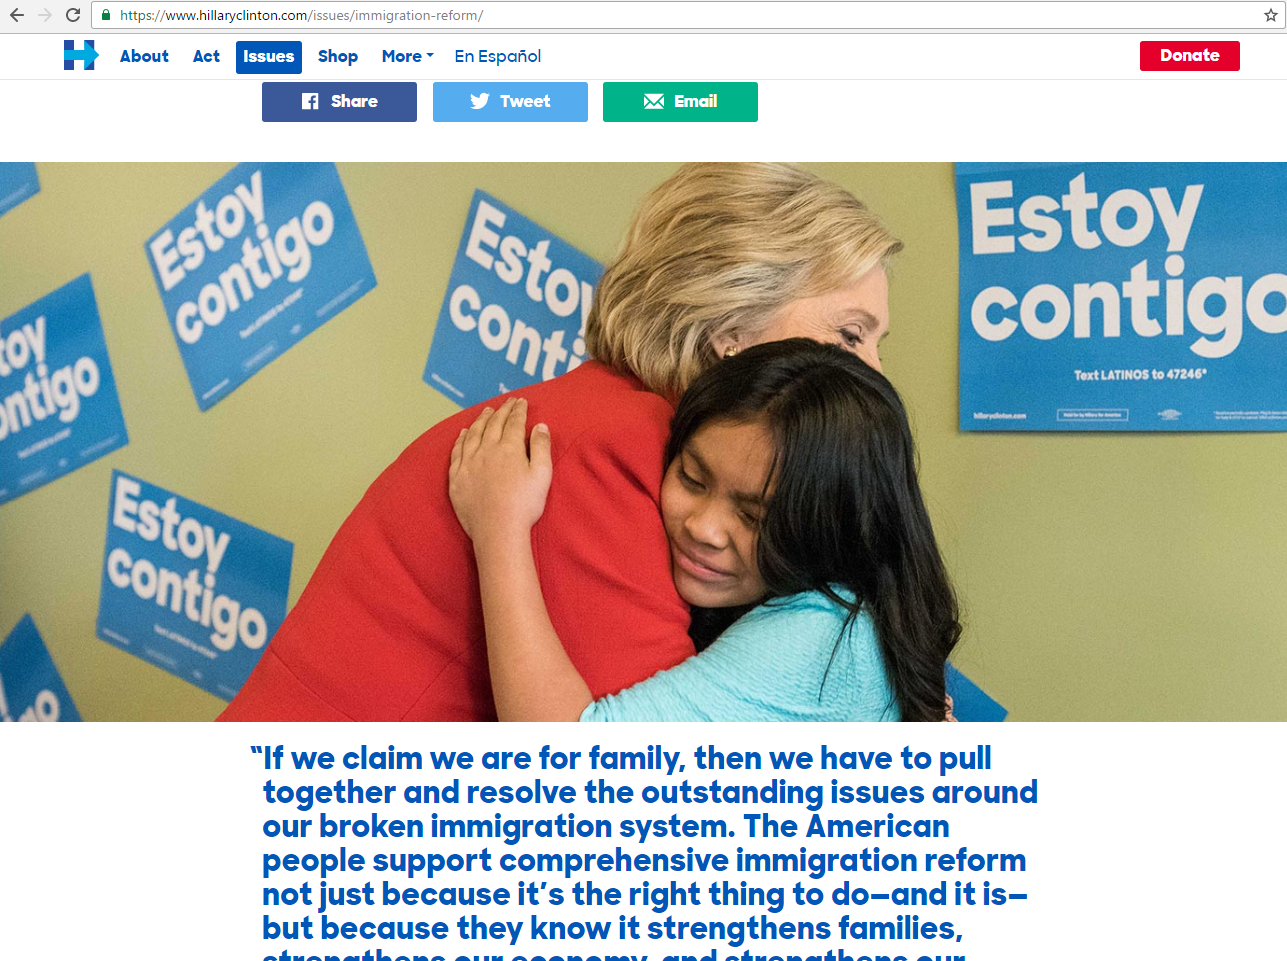 Screenshot of Hillary Clinton's Immigration Reform Webpage